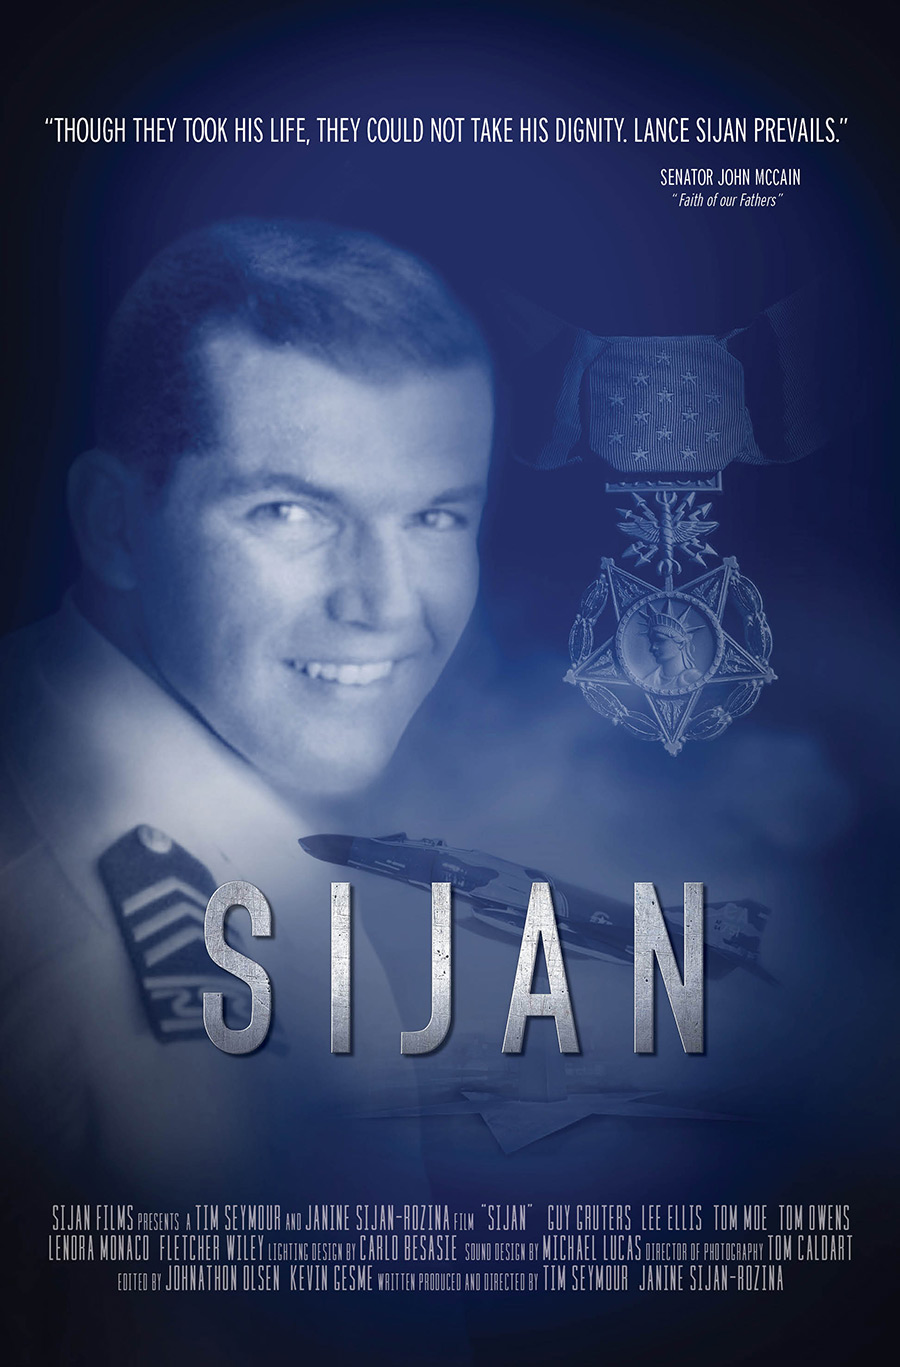 Sijan documentary tells harrowing story of USAFA's only Medal of Honor Recipient